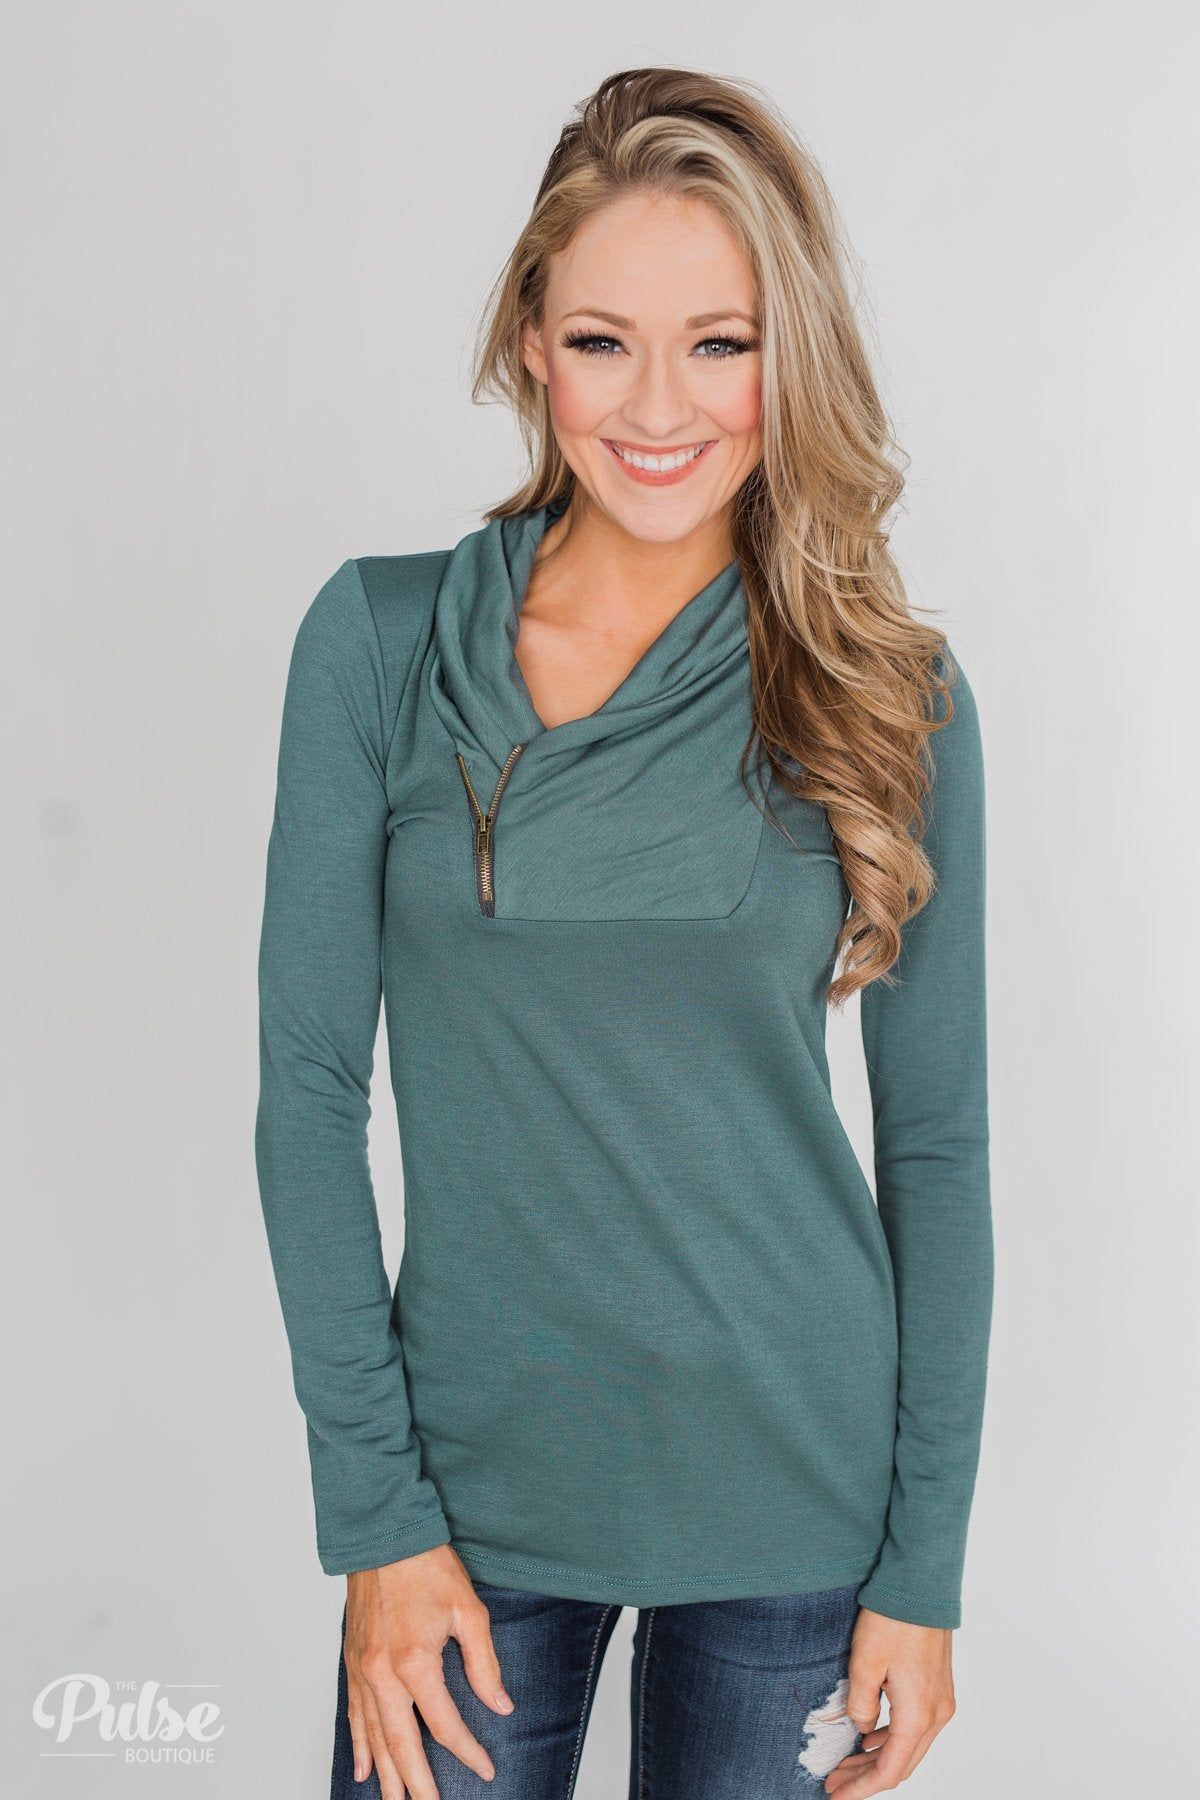 Give Me Time Zipper Pullover Top - Dark Teal